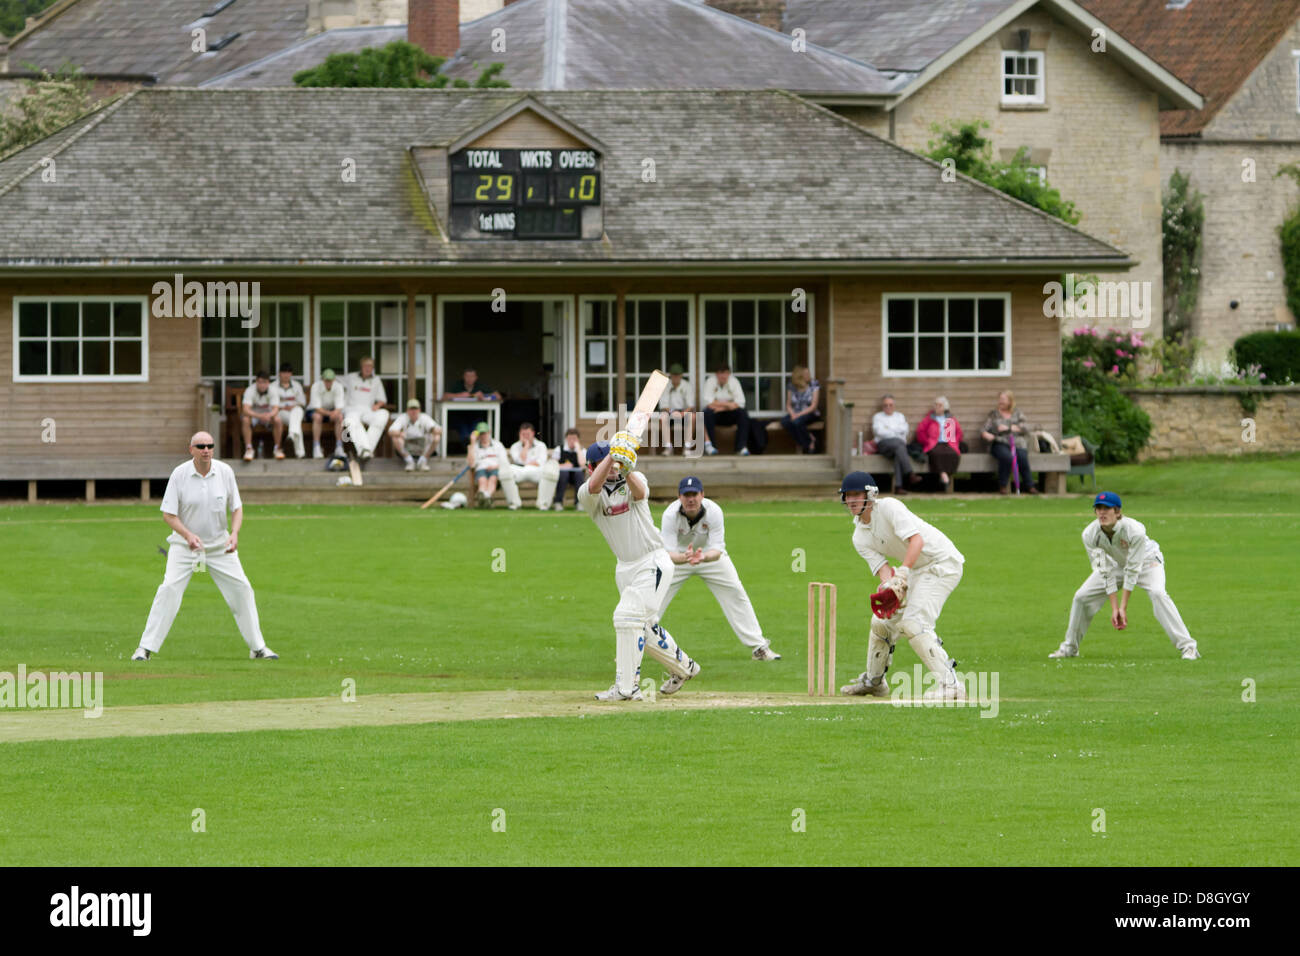 Partido de Cricket Hovingham, North Yorkshire Imagen De Stock